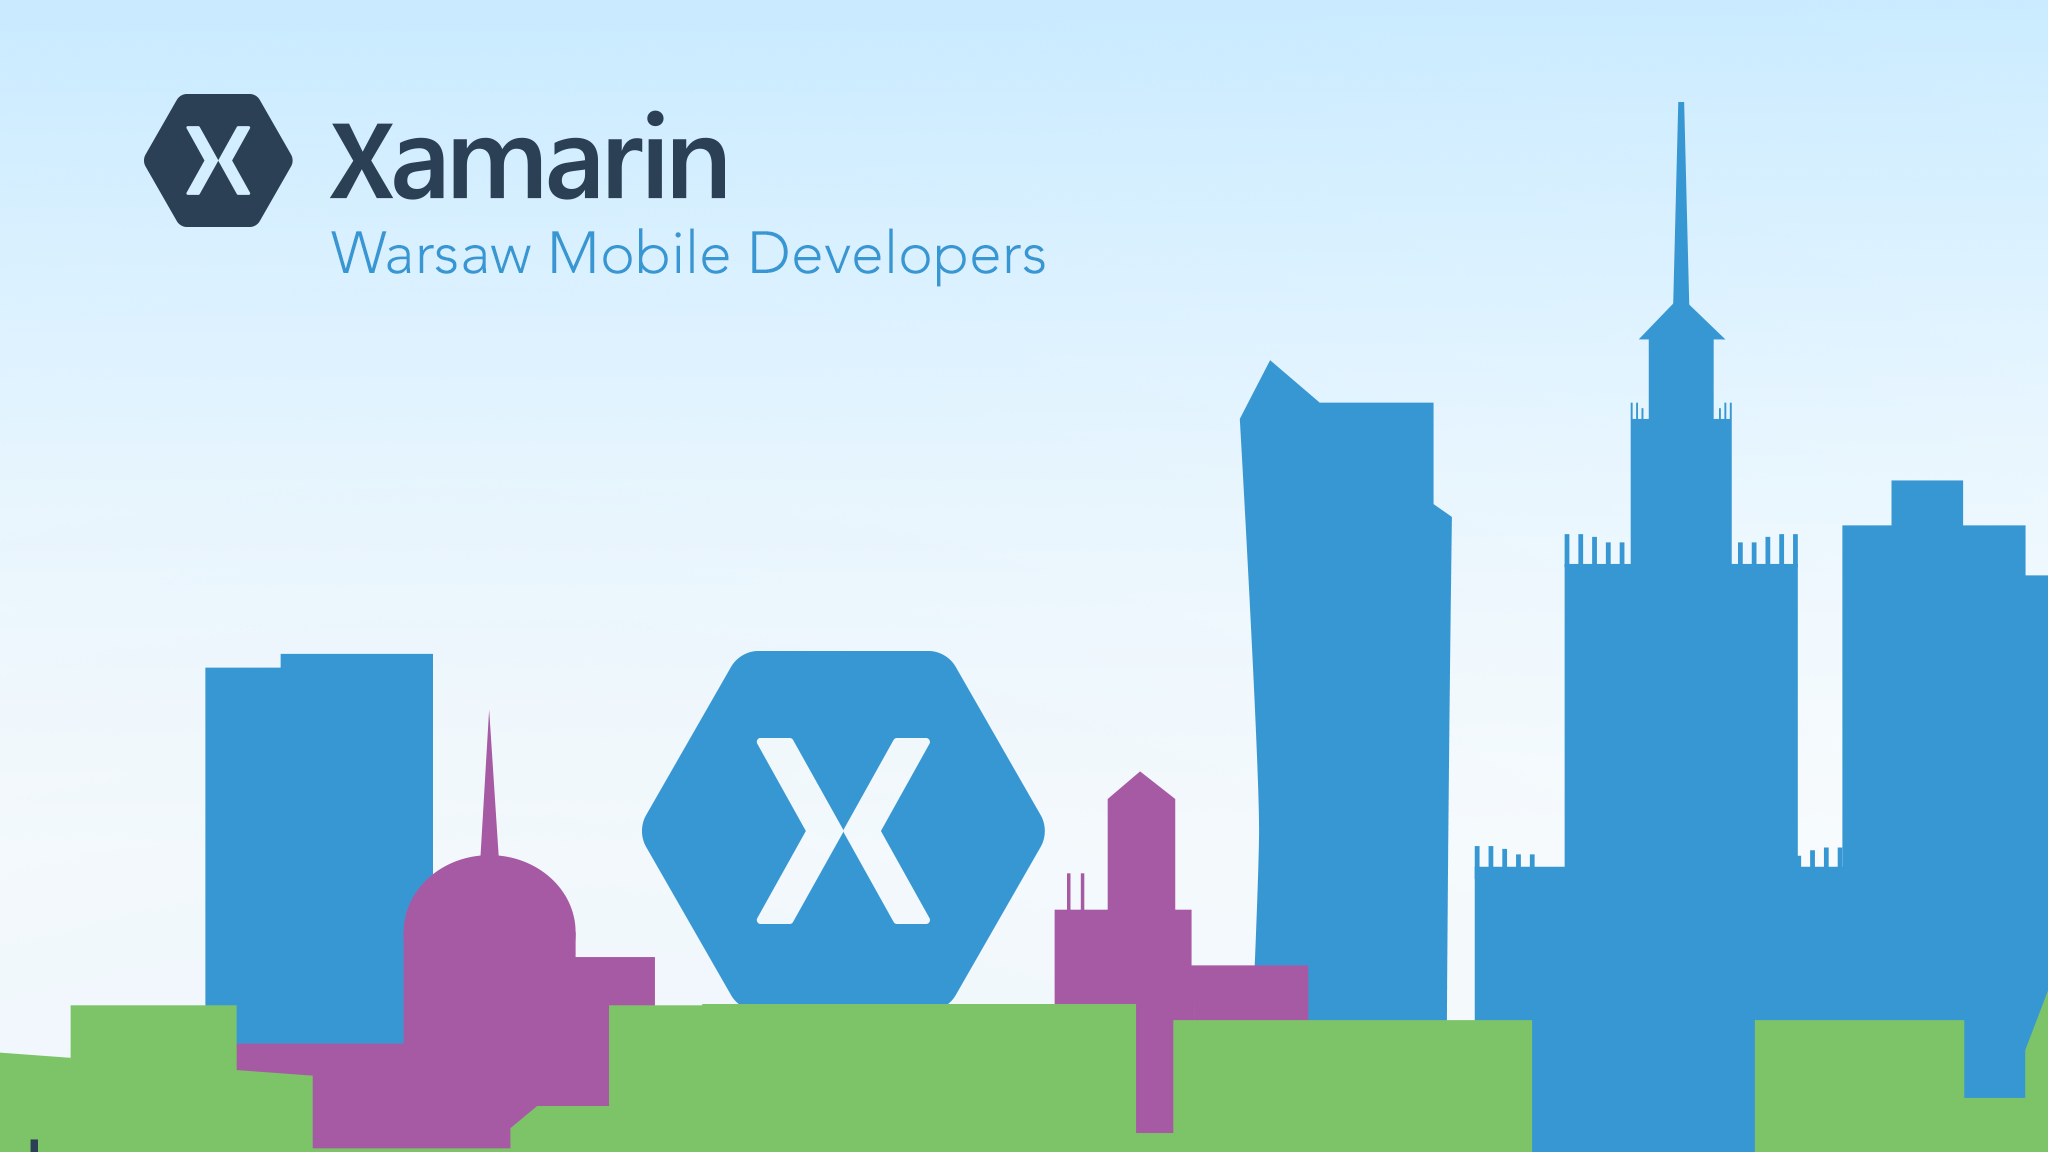 Xamarin Warsaw Mobile Developers